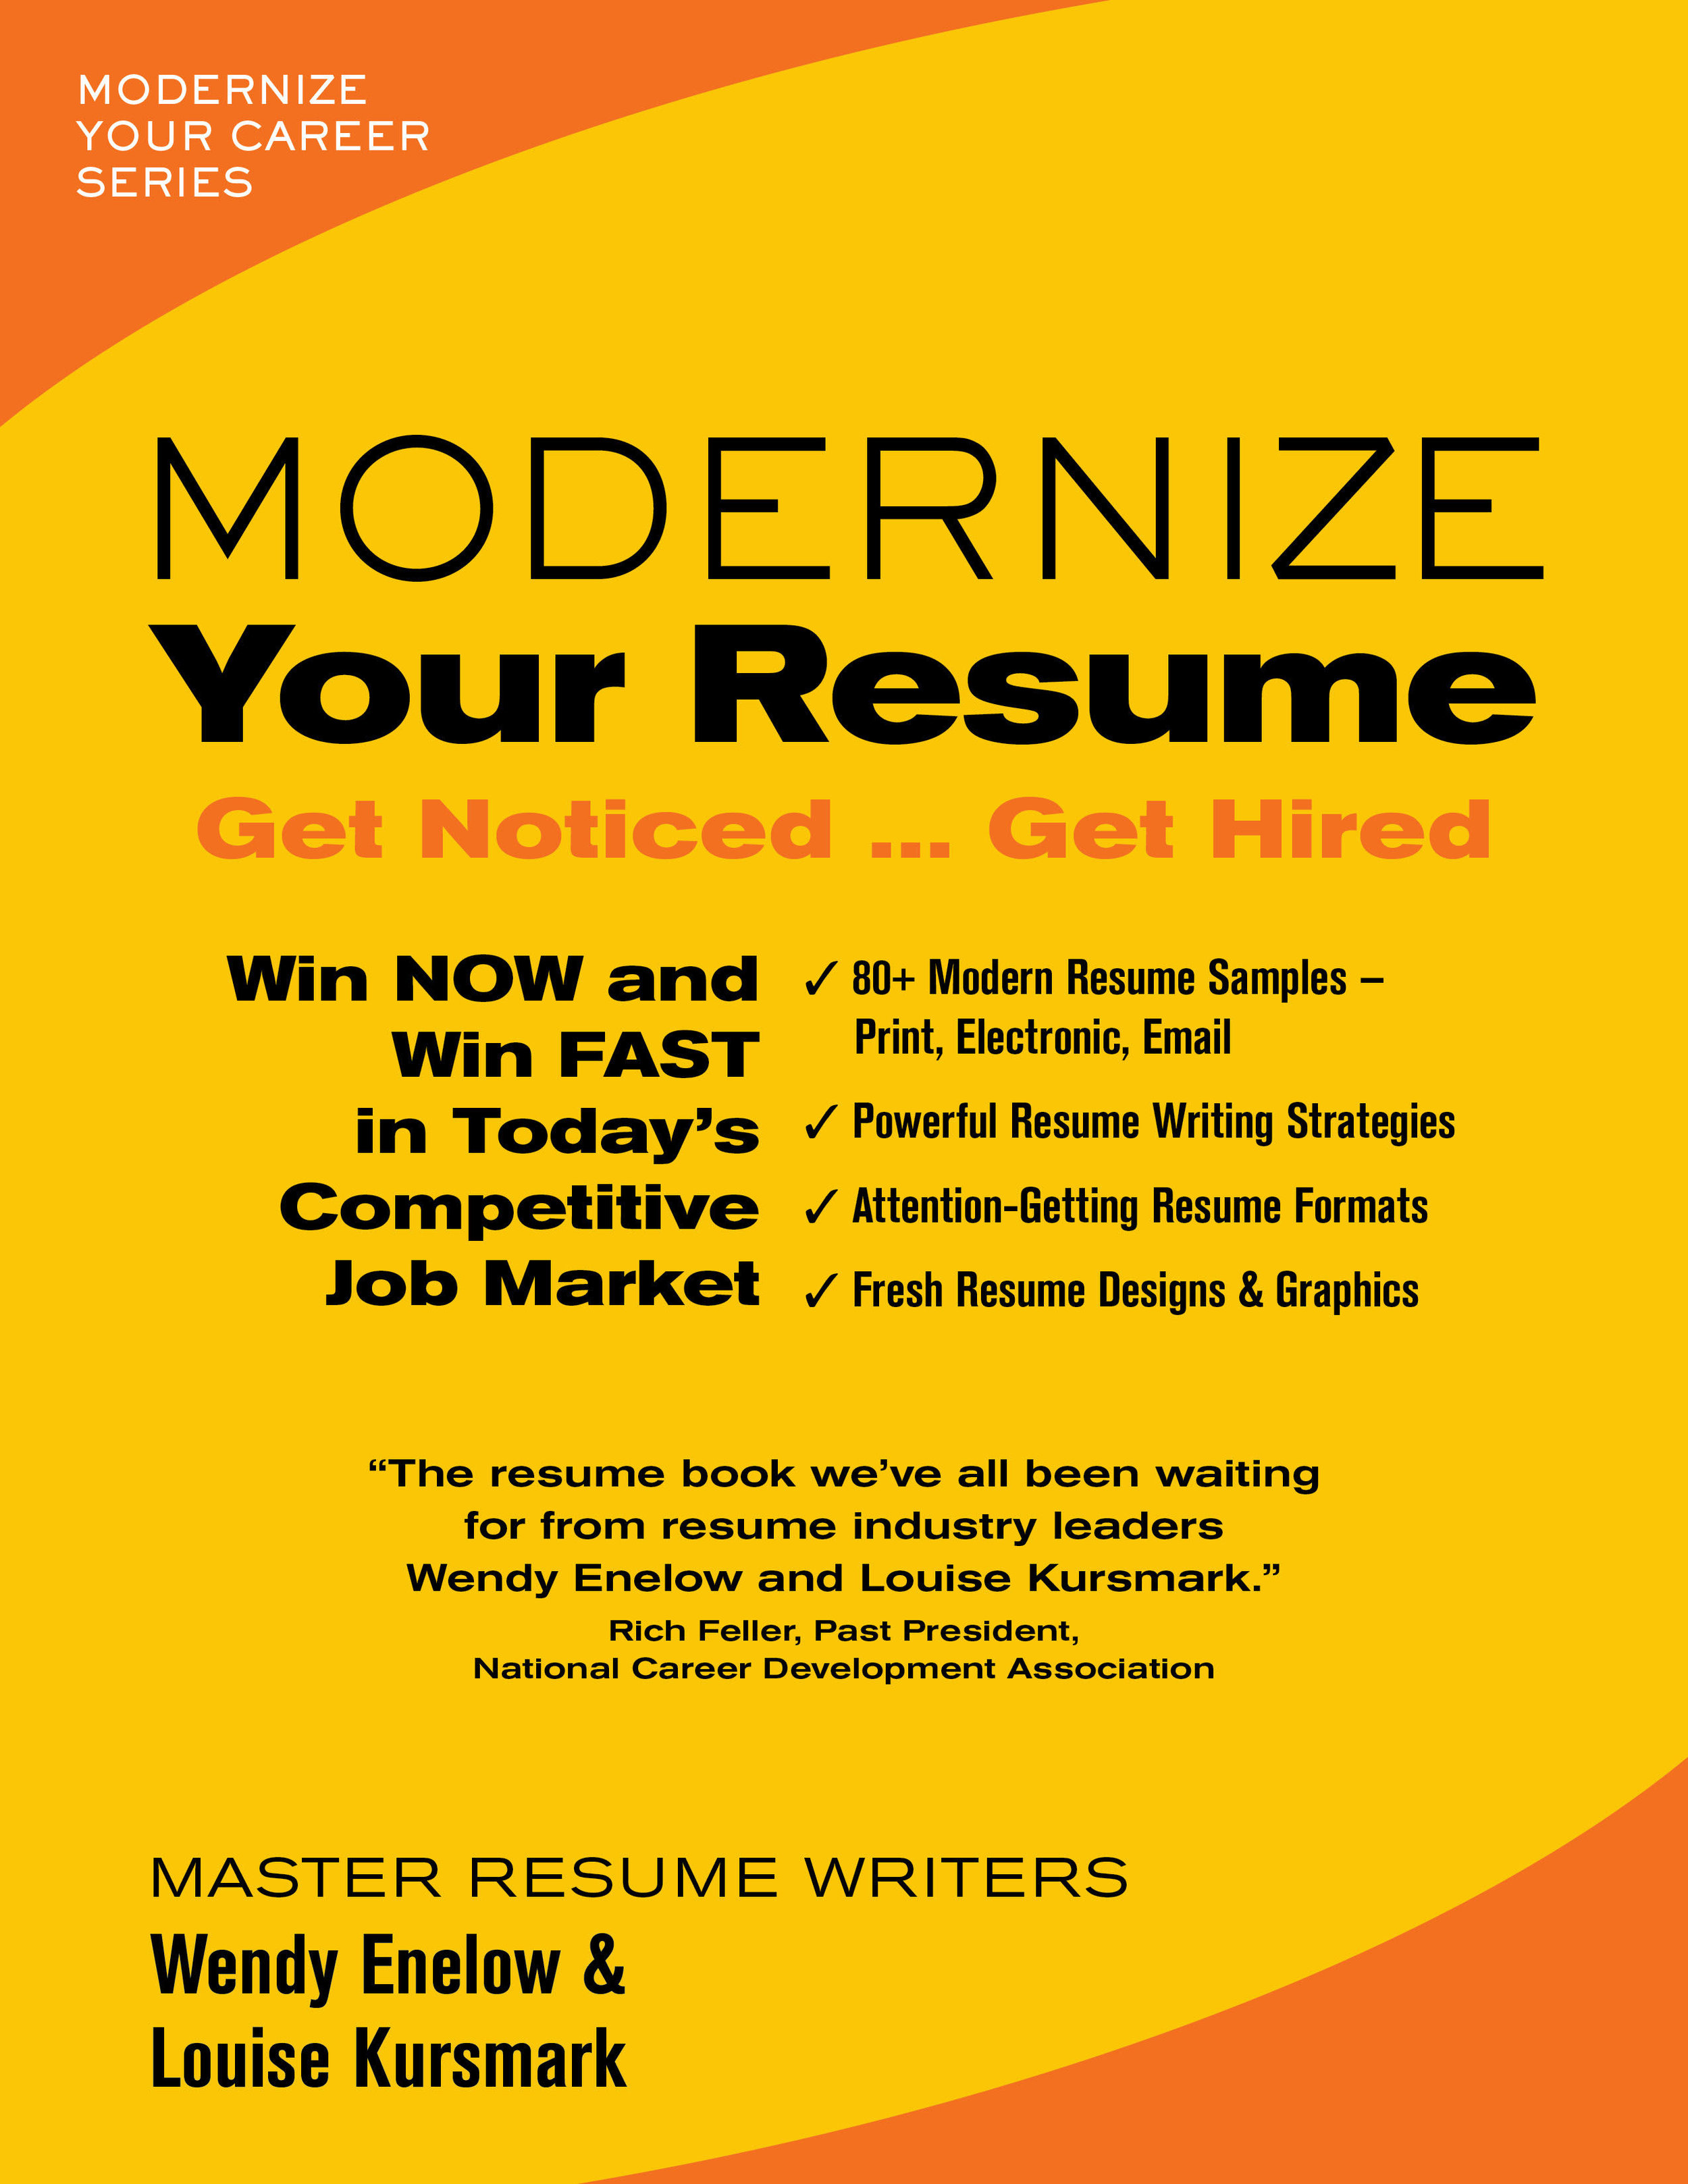 Modernize Your Resume Get Noticed Get Hired Best Legal Rankings